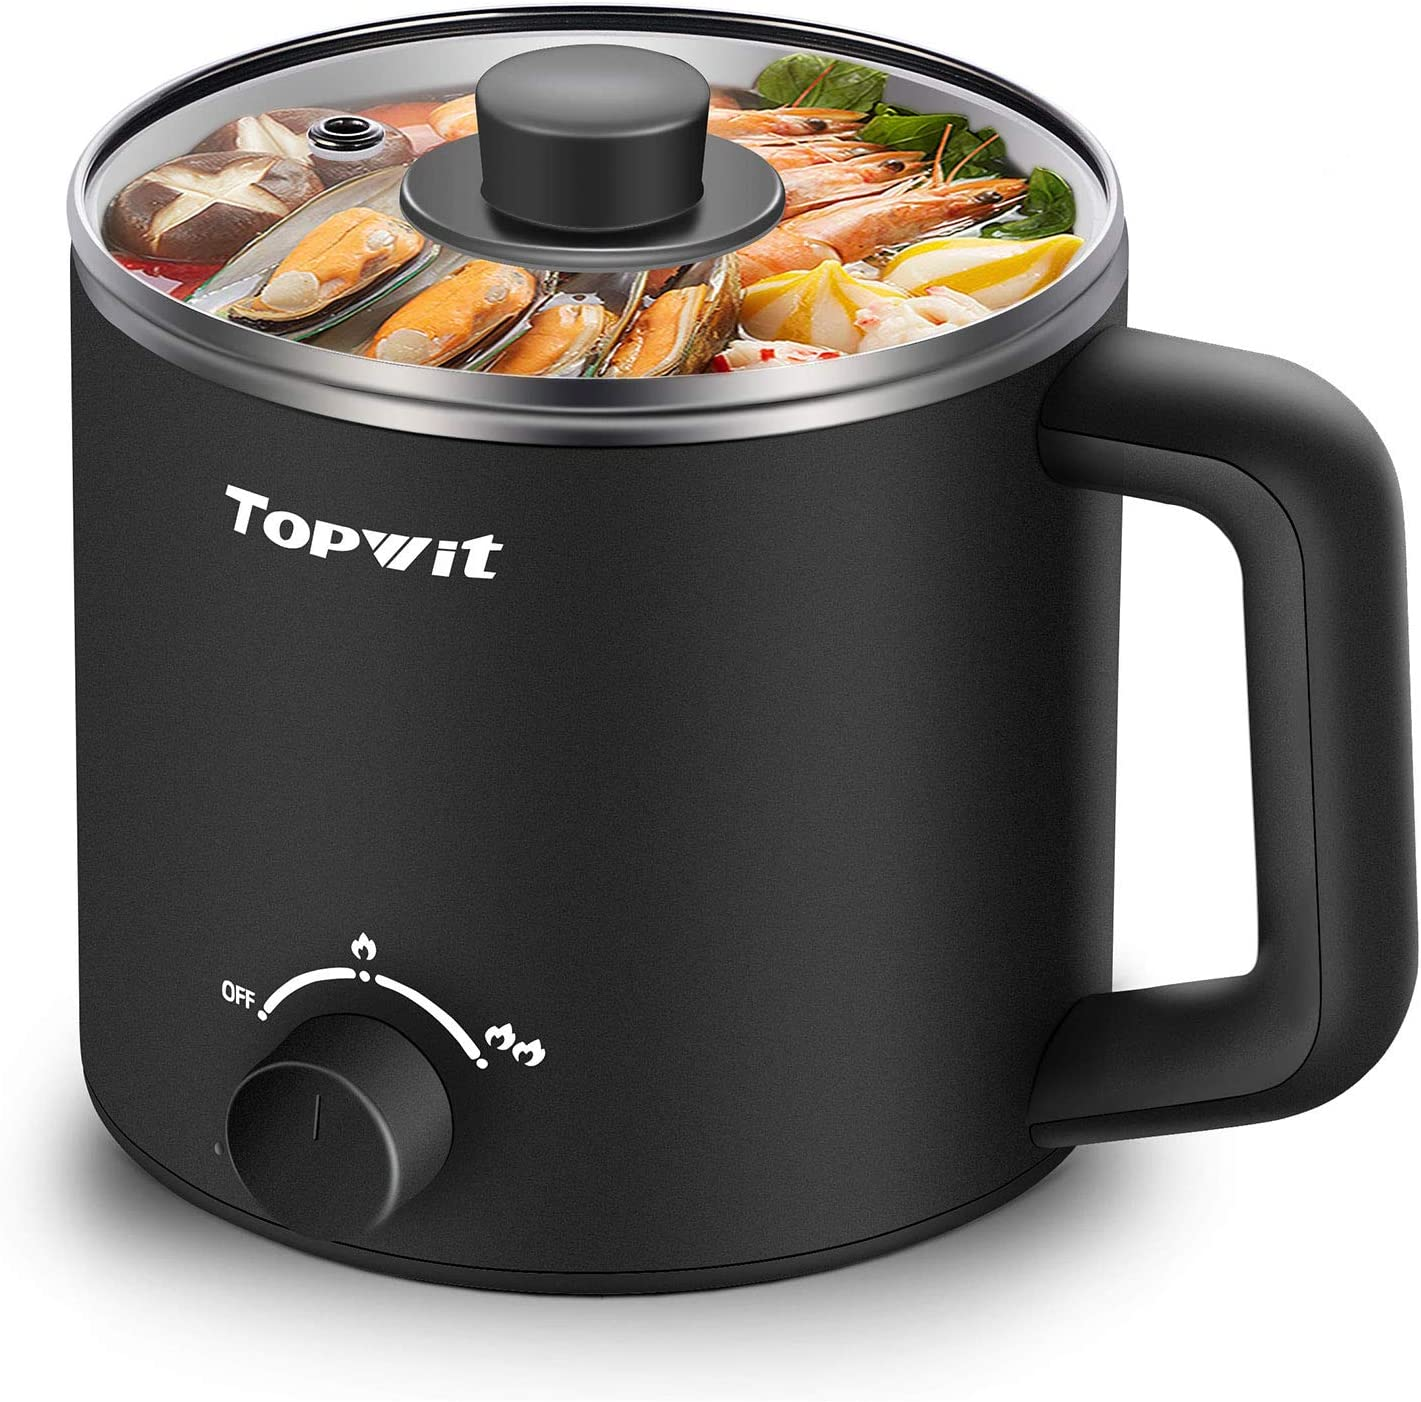 Topwit Electric Hot Pot, Mini Ramen Cooker, 1.6L Noodles Pot, Multifunctional Electric Cooker for Pasta, Shabu-Shabu, Oatmeal, Soup and Egg with Over-Heating Protection, Boil Dry Protection, Black